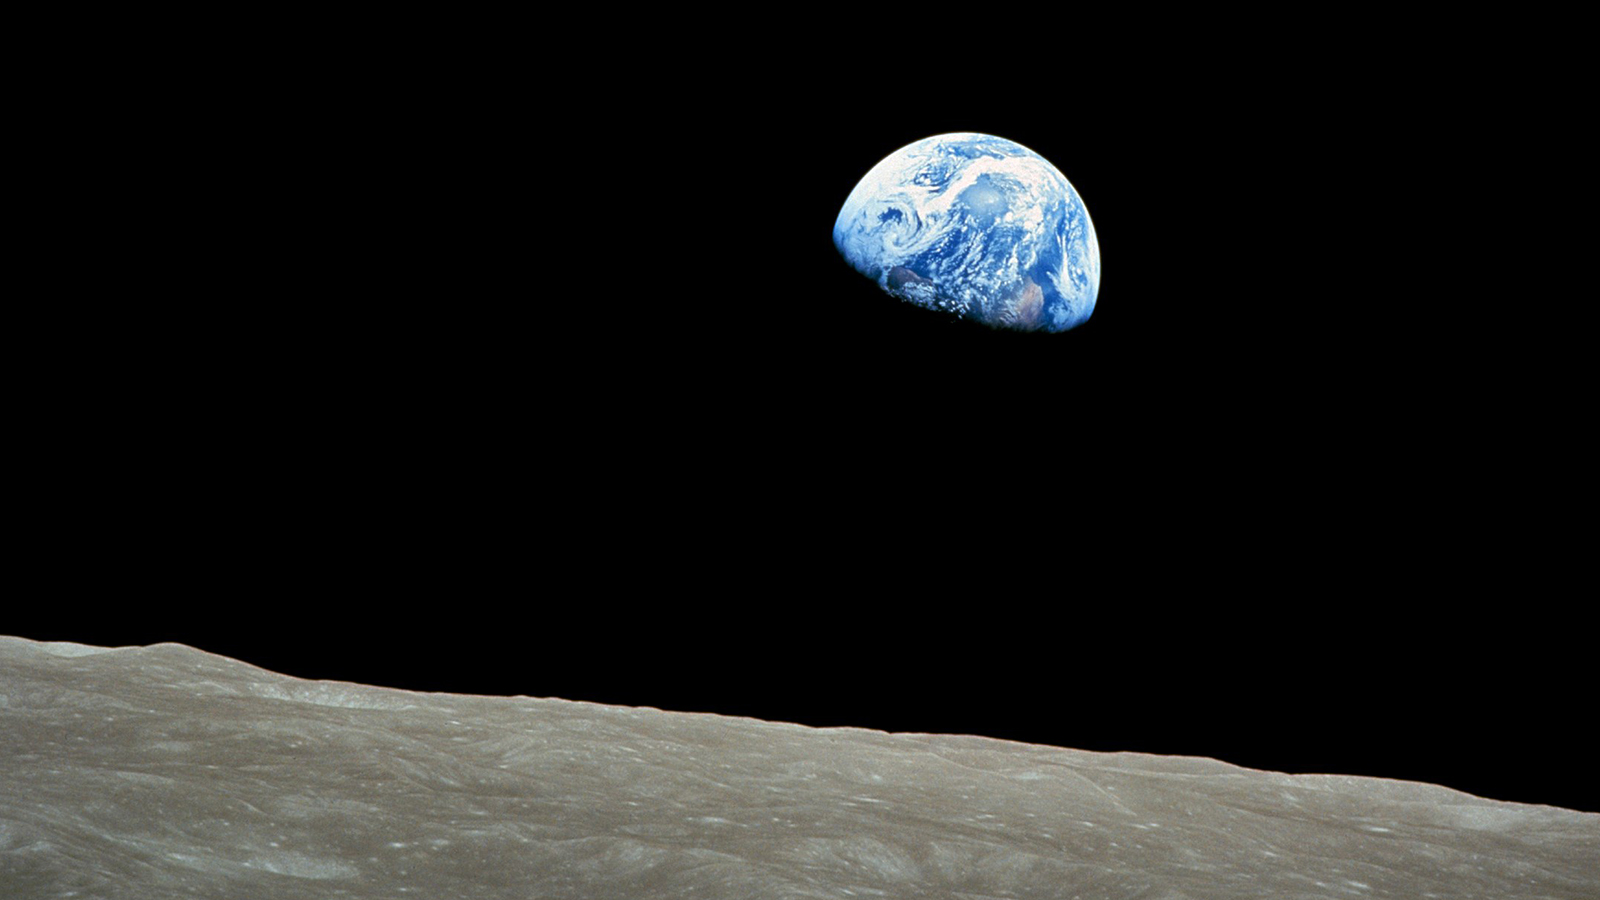 """Earthrise"" is a photograph of the Earth and parts of the moon's surface taken from lunar orbit by astronaut Bill Anders in 1968, during the Apollo 8 mission. Photo by Bill Anders/NASA/Creative Commons"